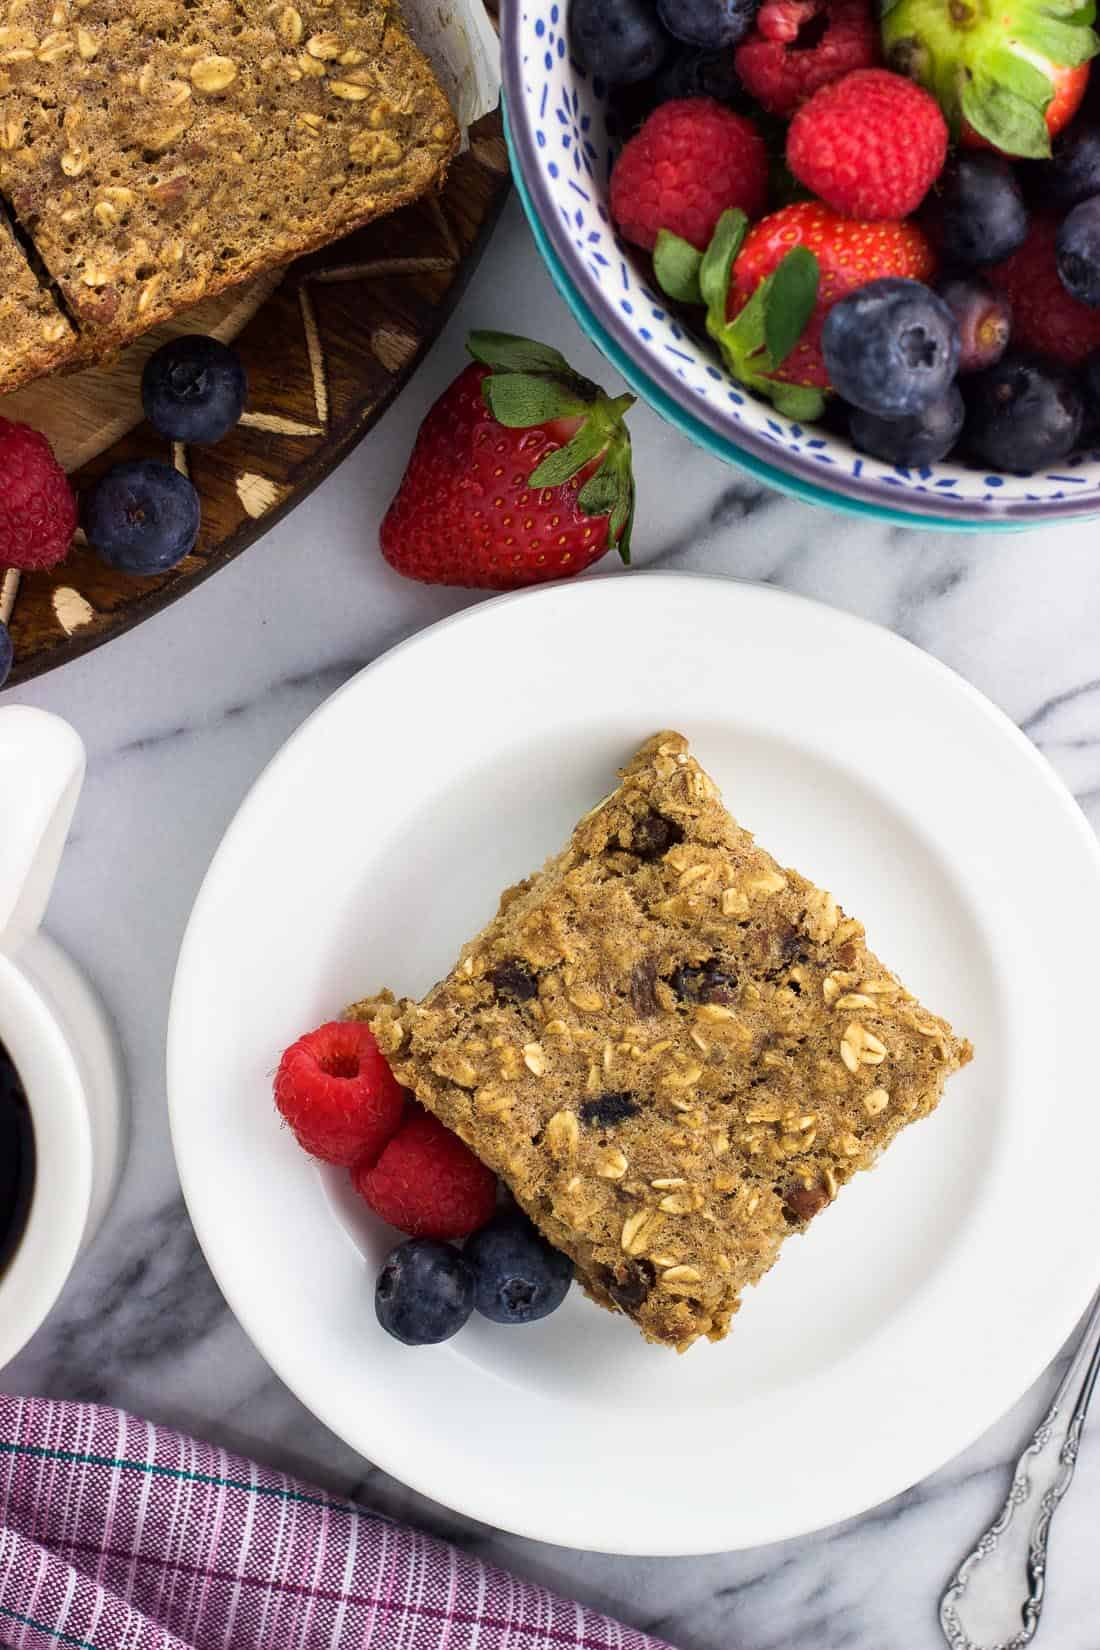 A piece of baked oatmeal on a plate next to a cup of coffee and a bowl of fruit.